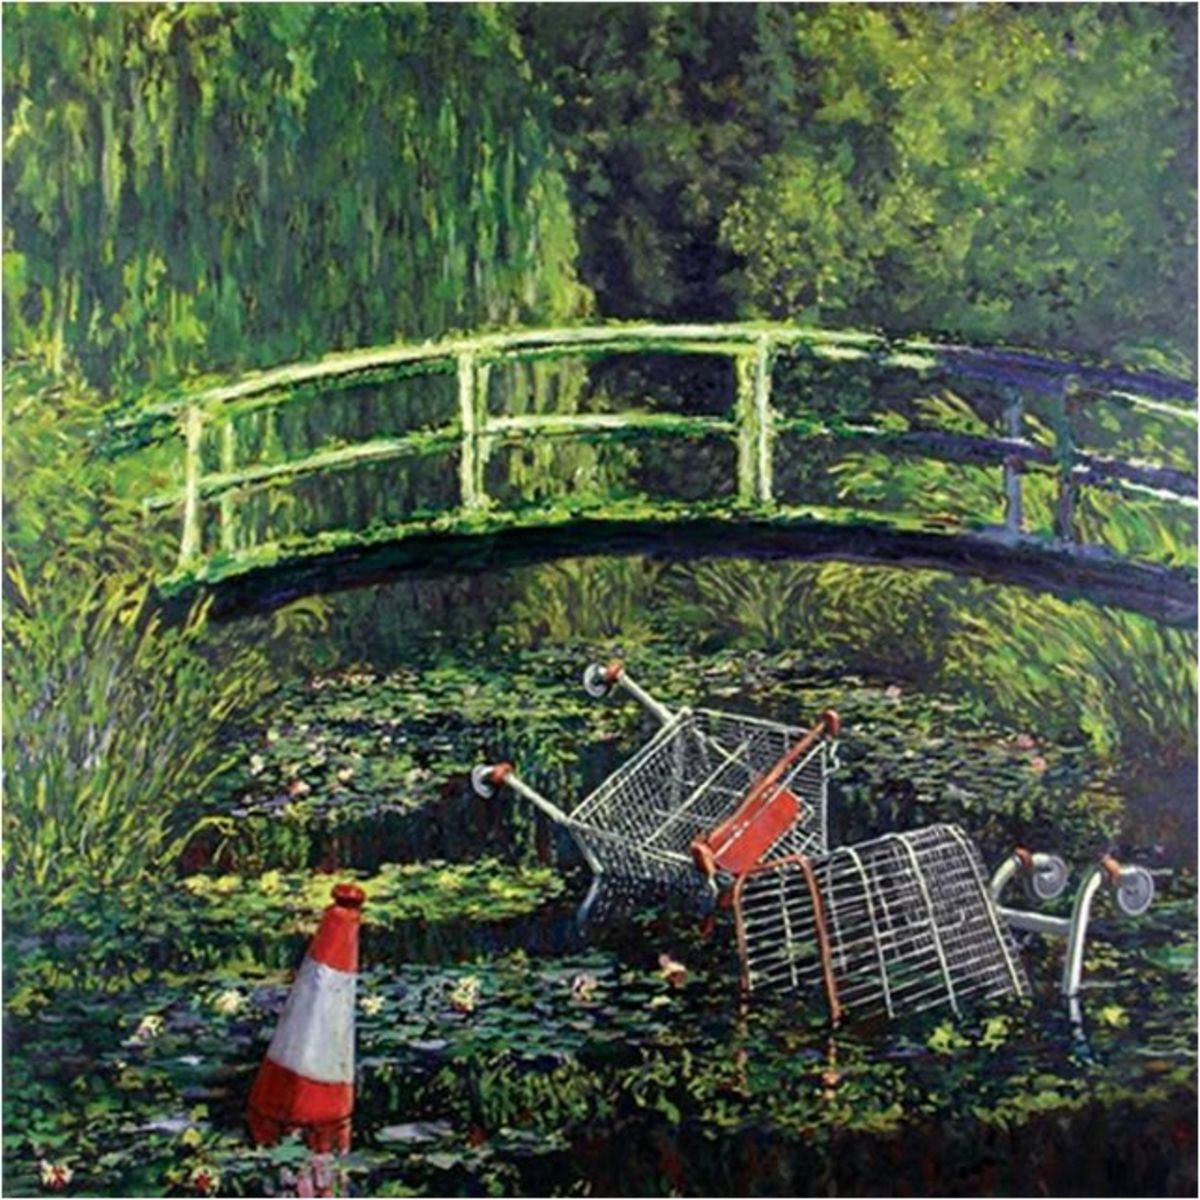 Monet's Water Lily Pond (Banksy version):